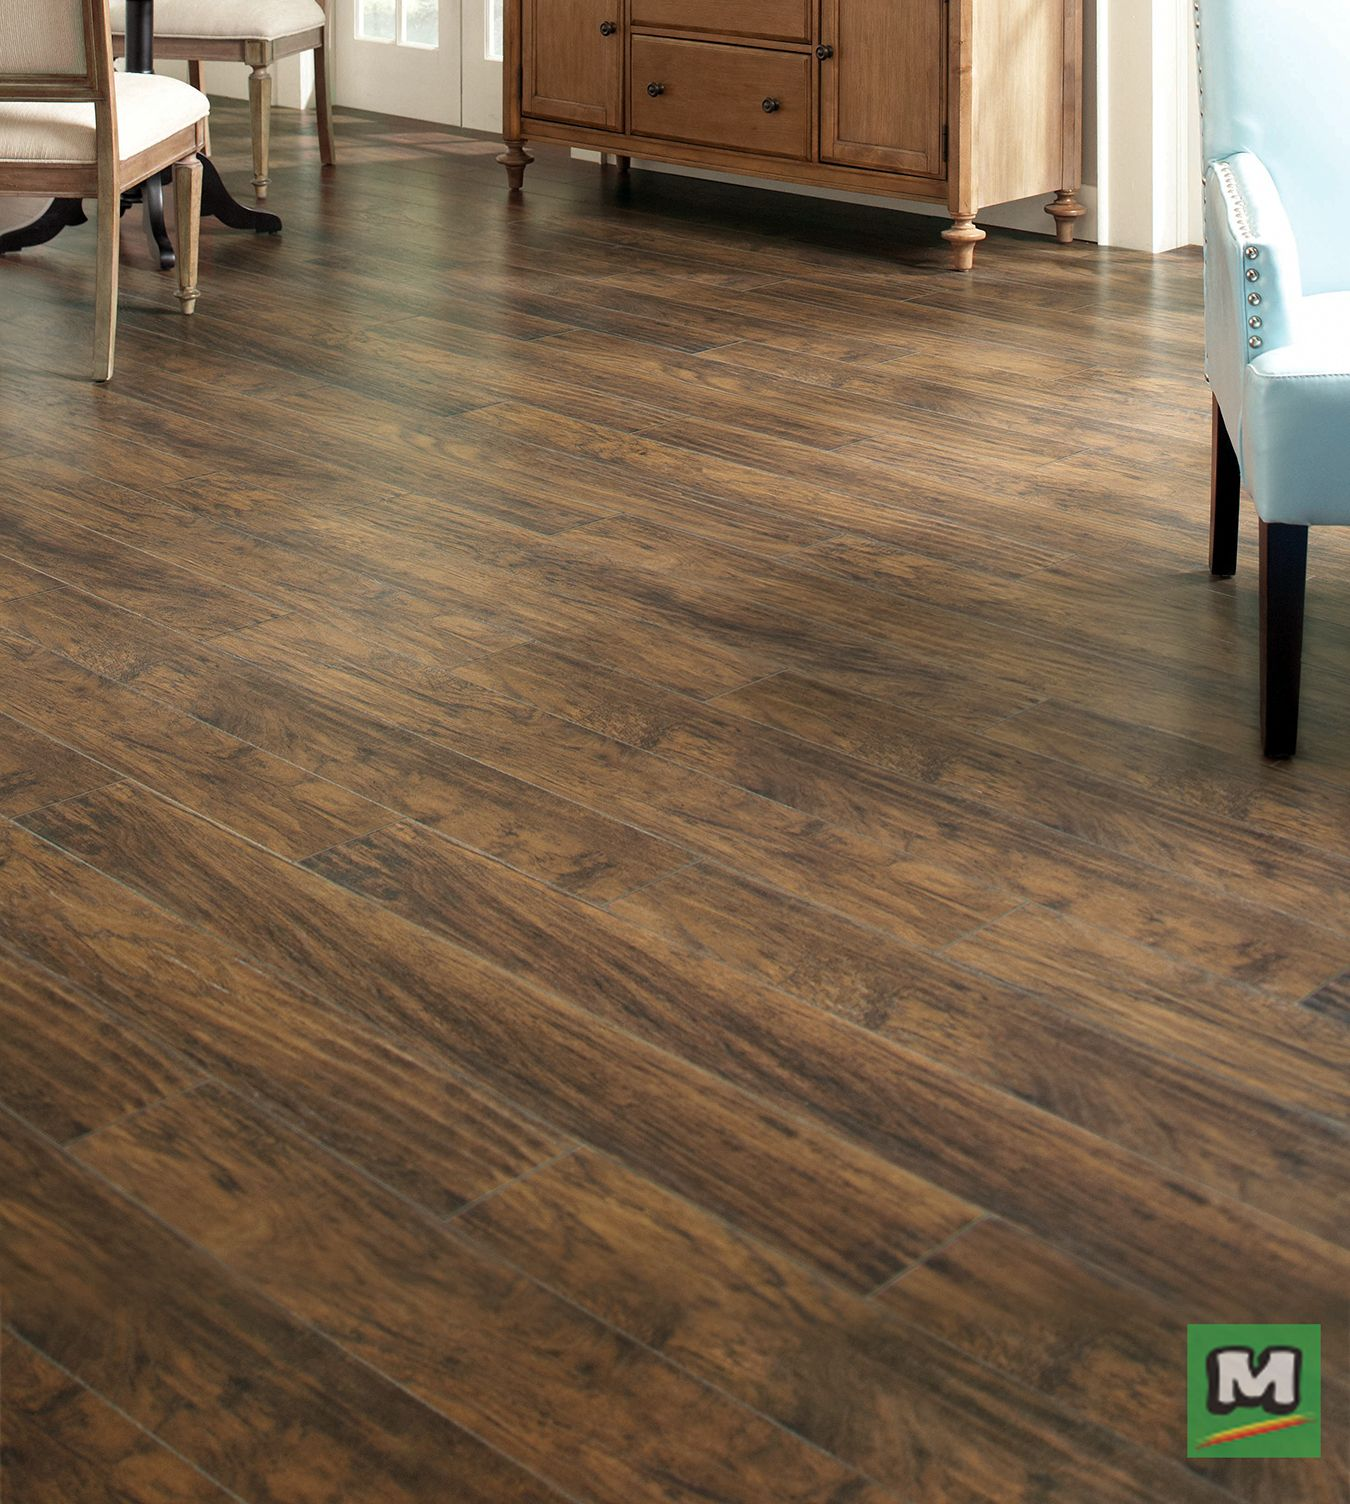 Monroe Park Hickory Laminate Flooring Features A Realistic Texture